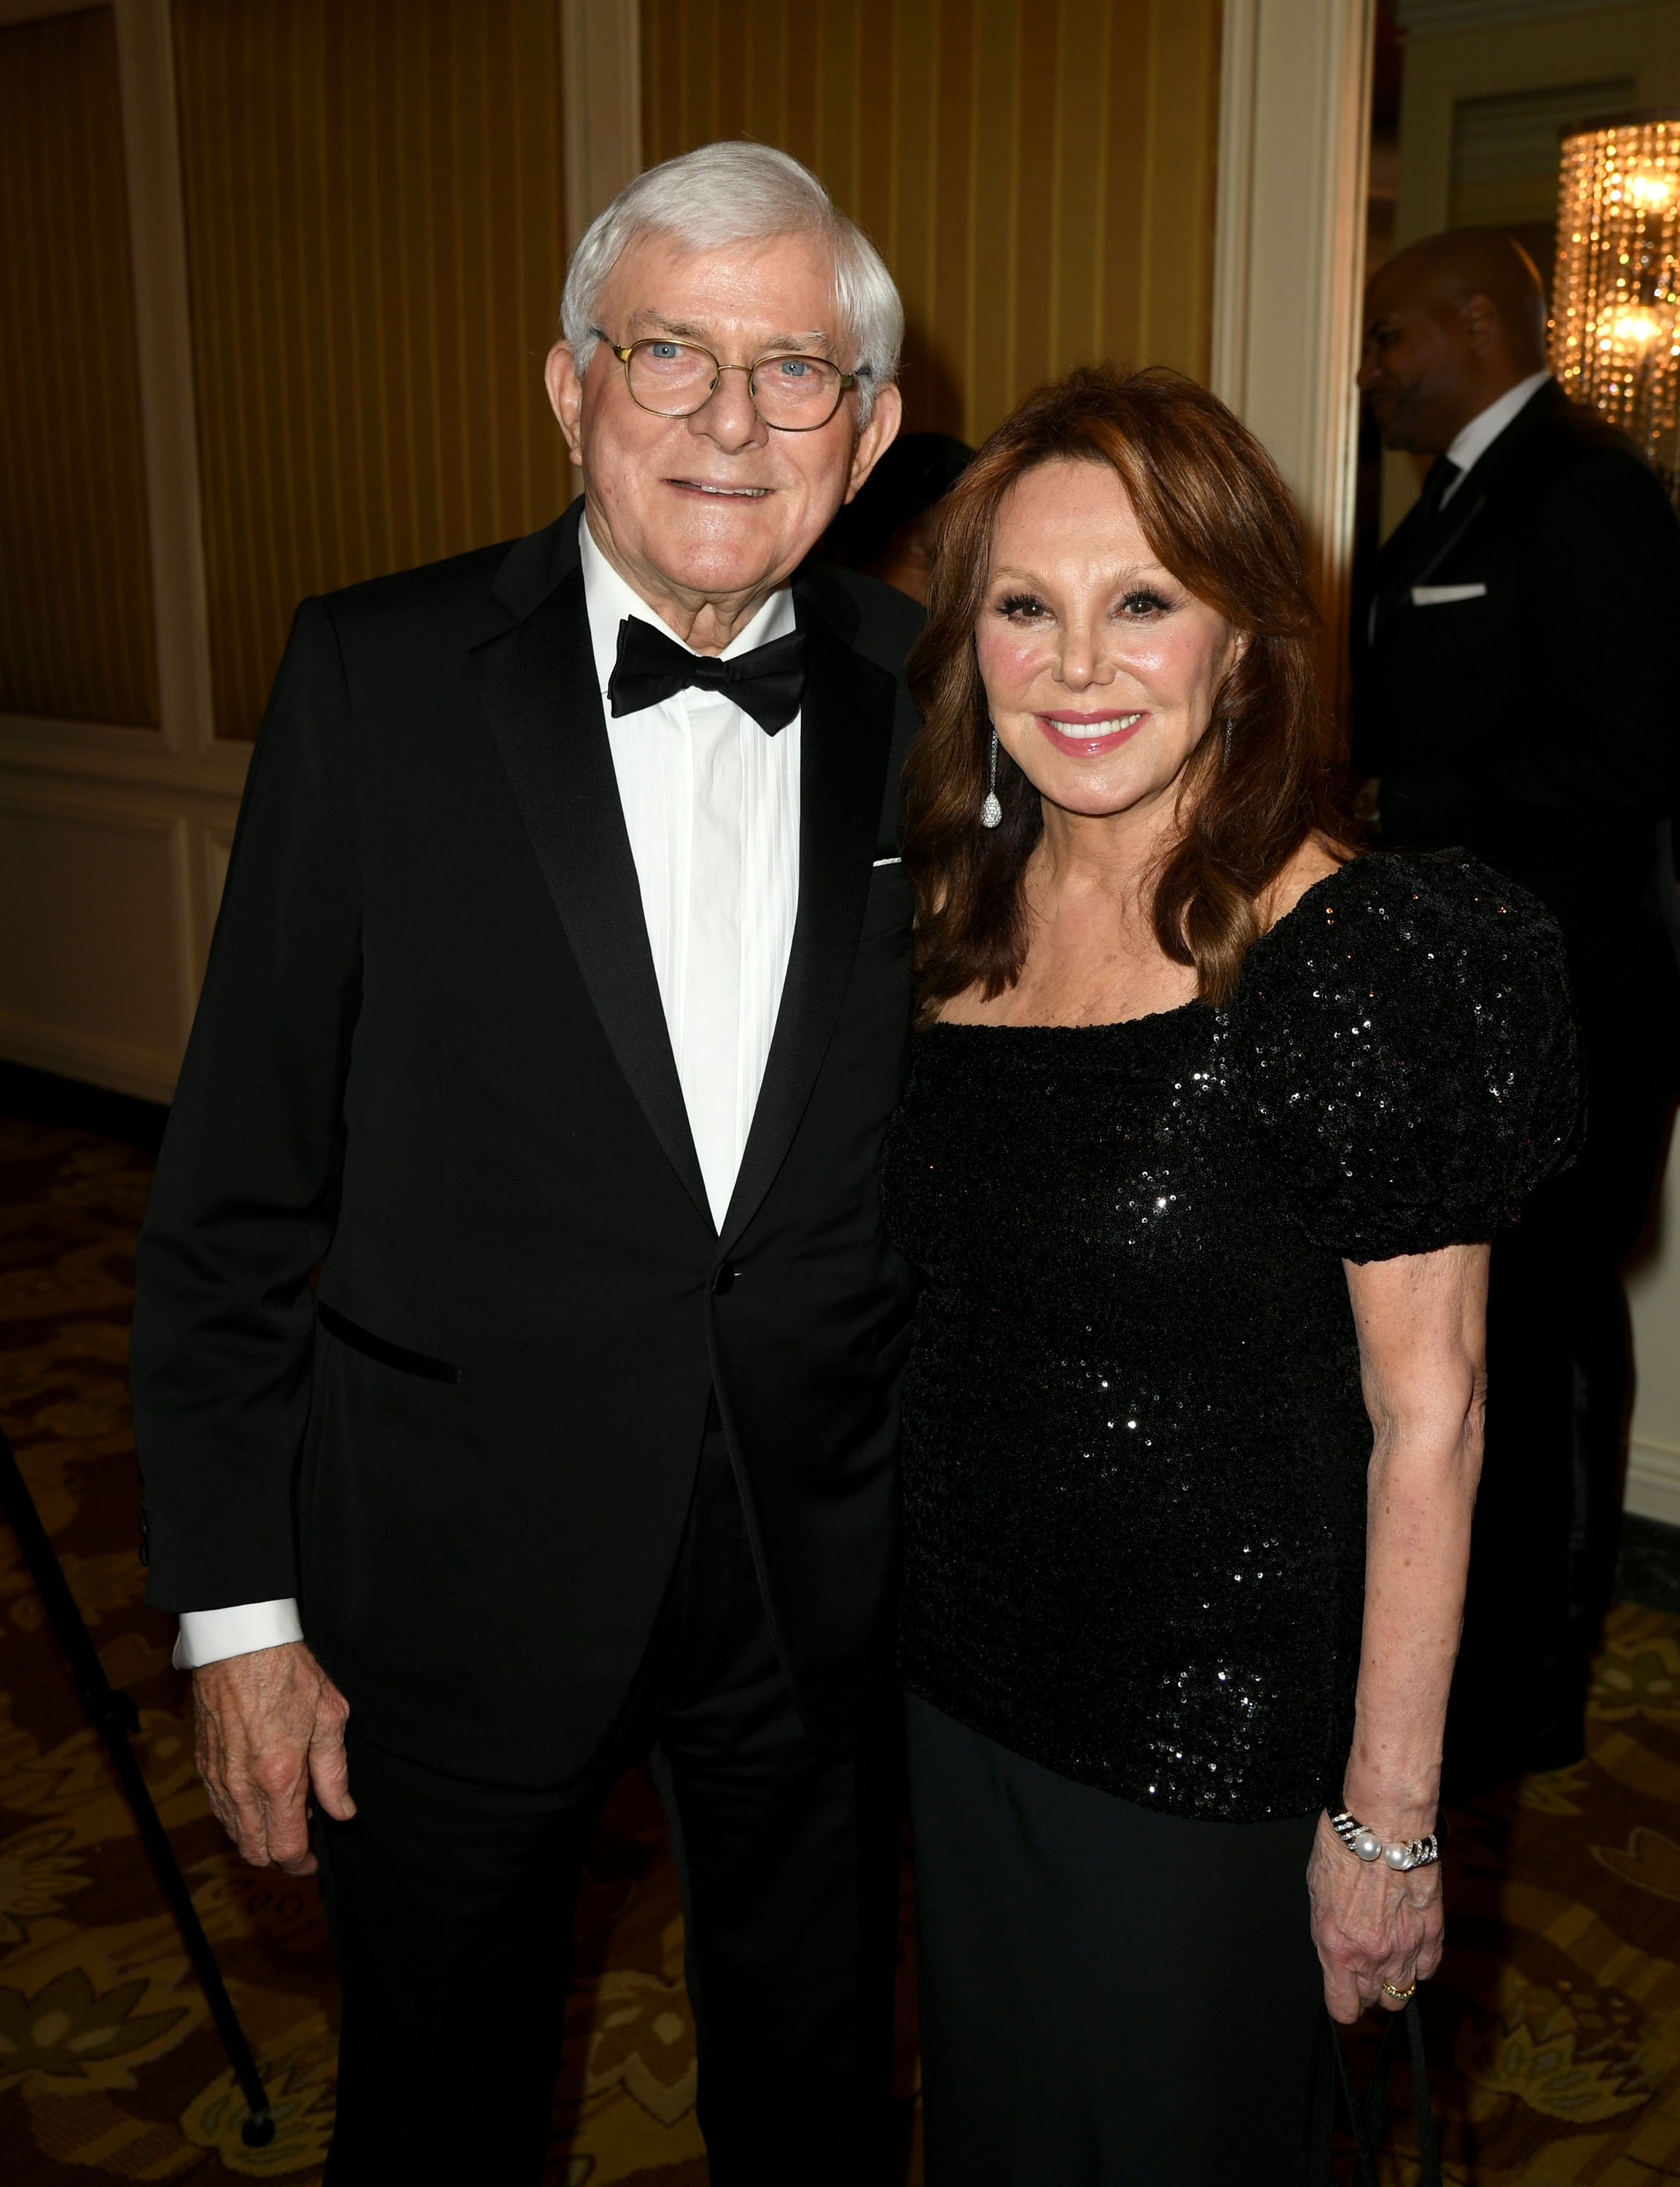 Phil Donahue and Marlo Thomas arrive at the American Icon Awards at the Beverly Wilshire Four Seasons Hotel on May 19, 2019 | Photo: GettyImages